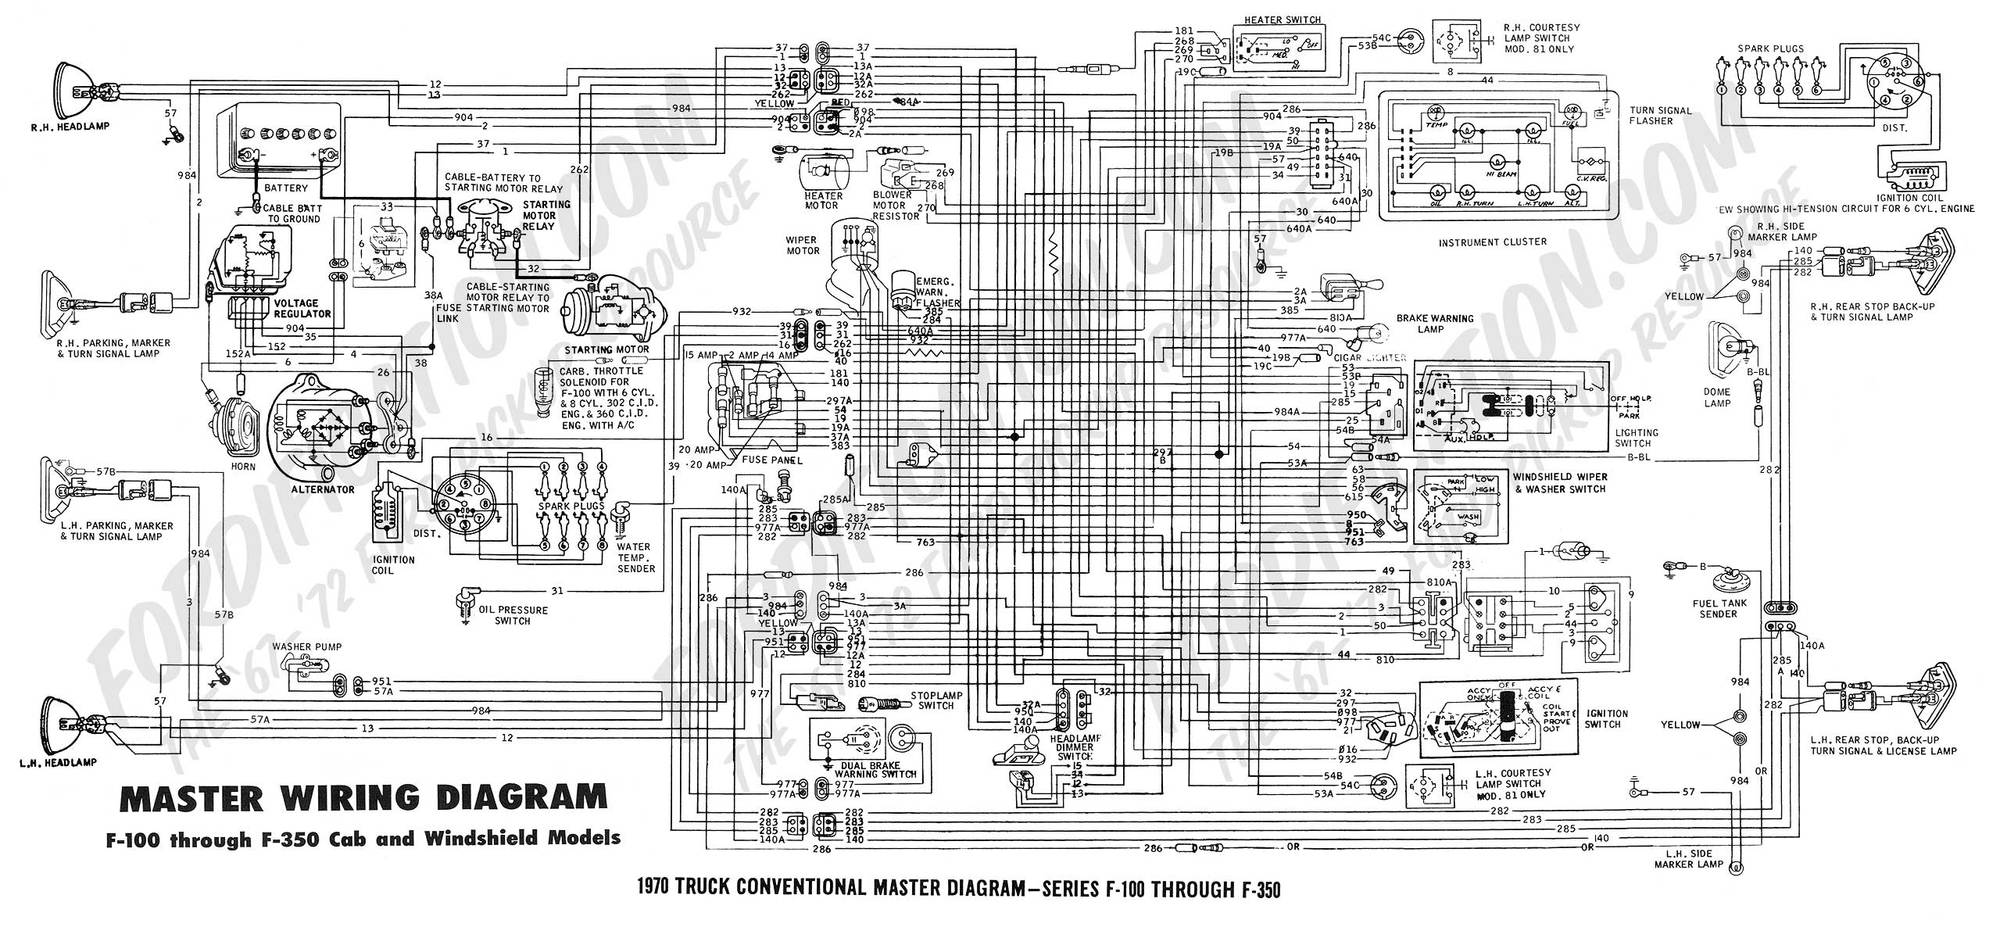 1977 ford f150 wiring diagram 1977 image wiring 2005 ford f150 wiring diagram jodebal com on 1977 ford f150 wiring diagram